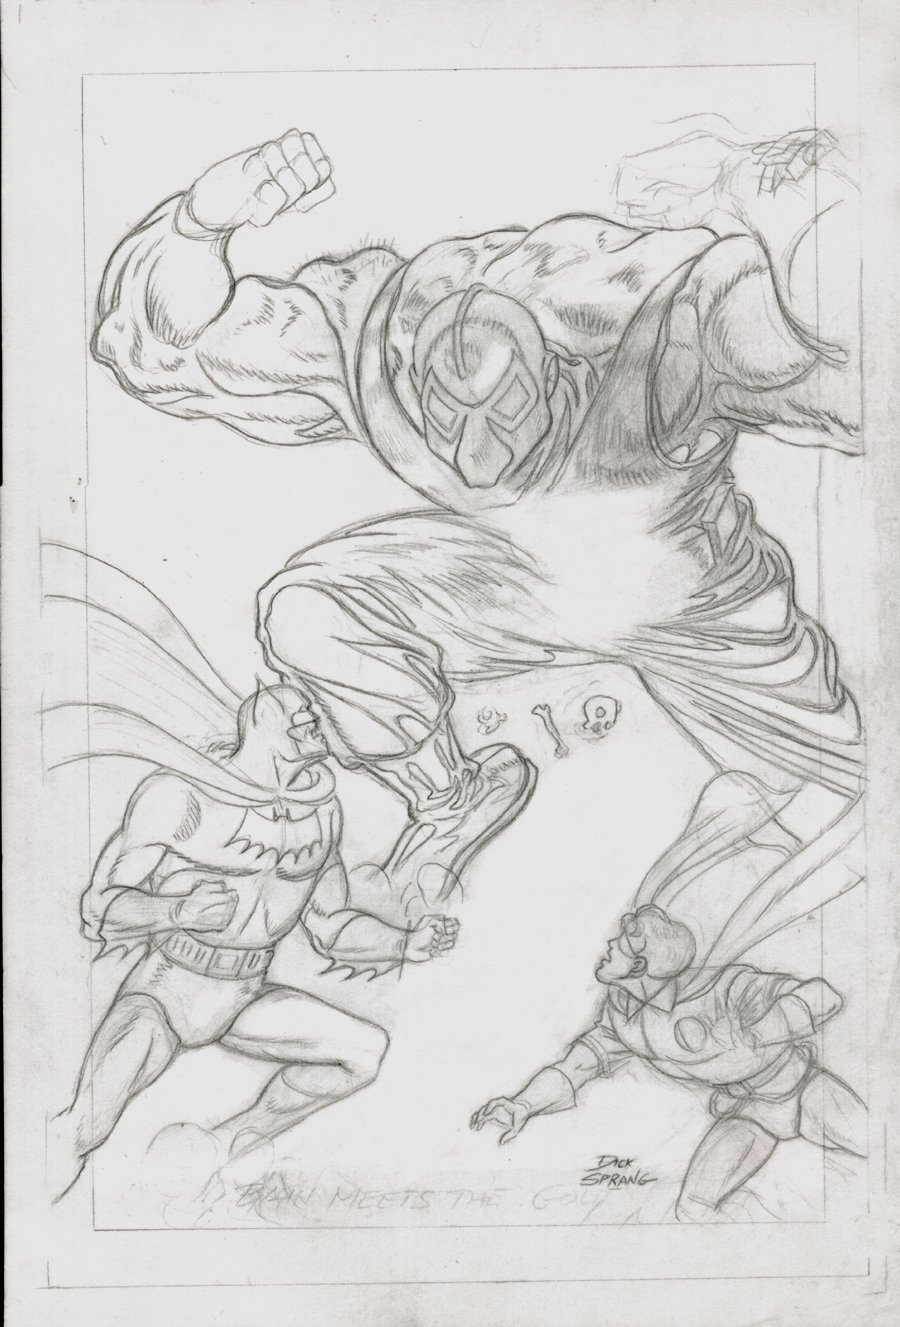 Batman Chronicles Gallery #1 Finished Pencil Pinup (Batman & Robin Battle BANE!) 1997